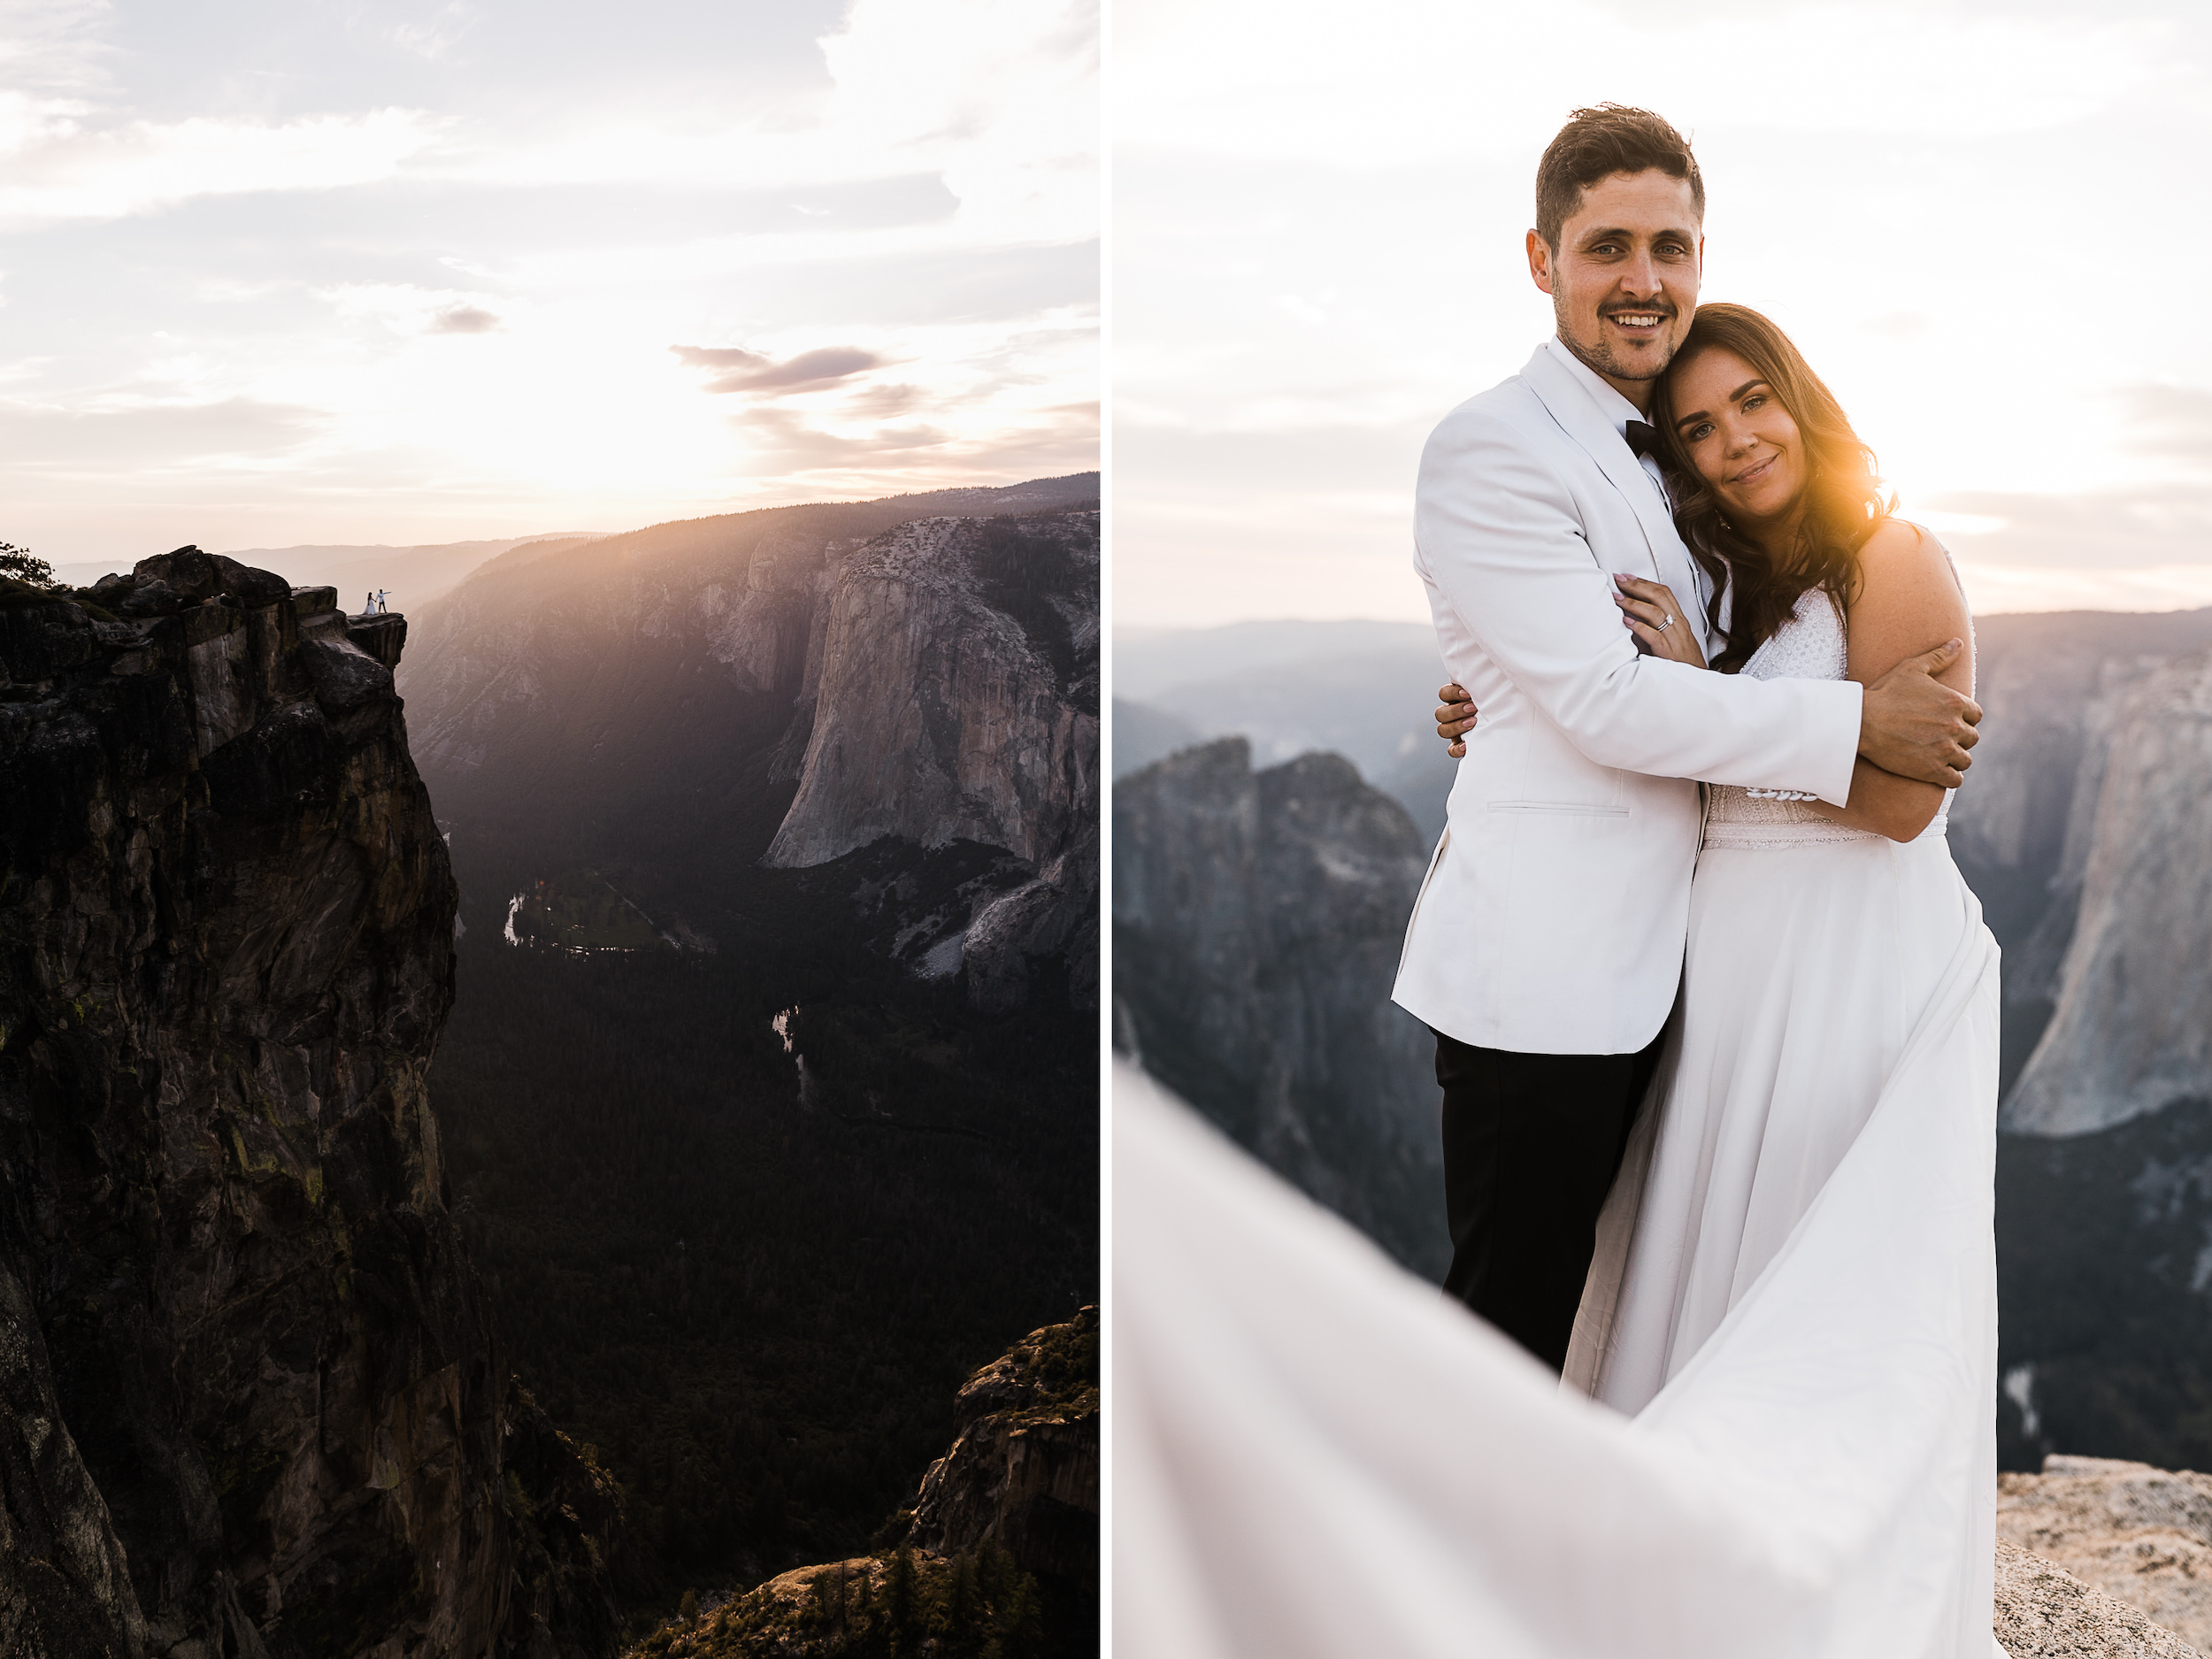 Jaime + Christian's Adventurous Elopement in Yosemite National Park | Glacier Point Sunrise First Look + Taft Point Ceremony